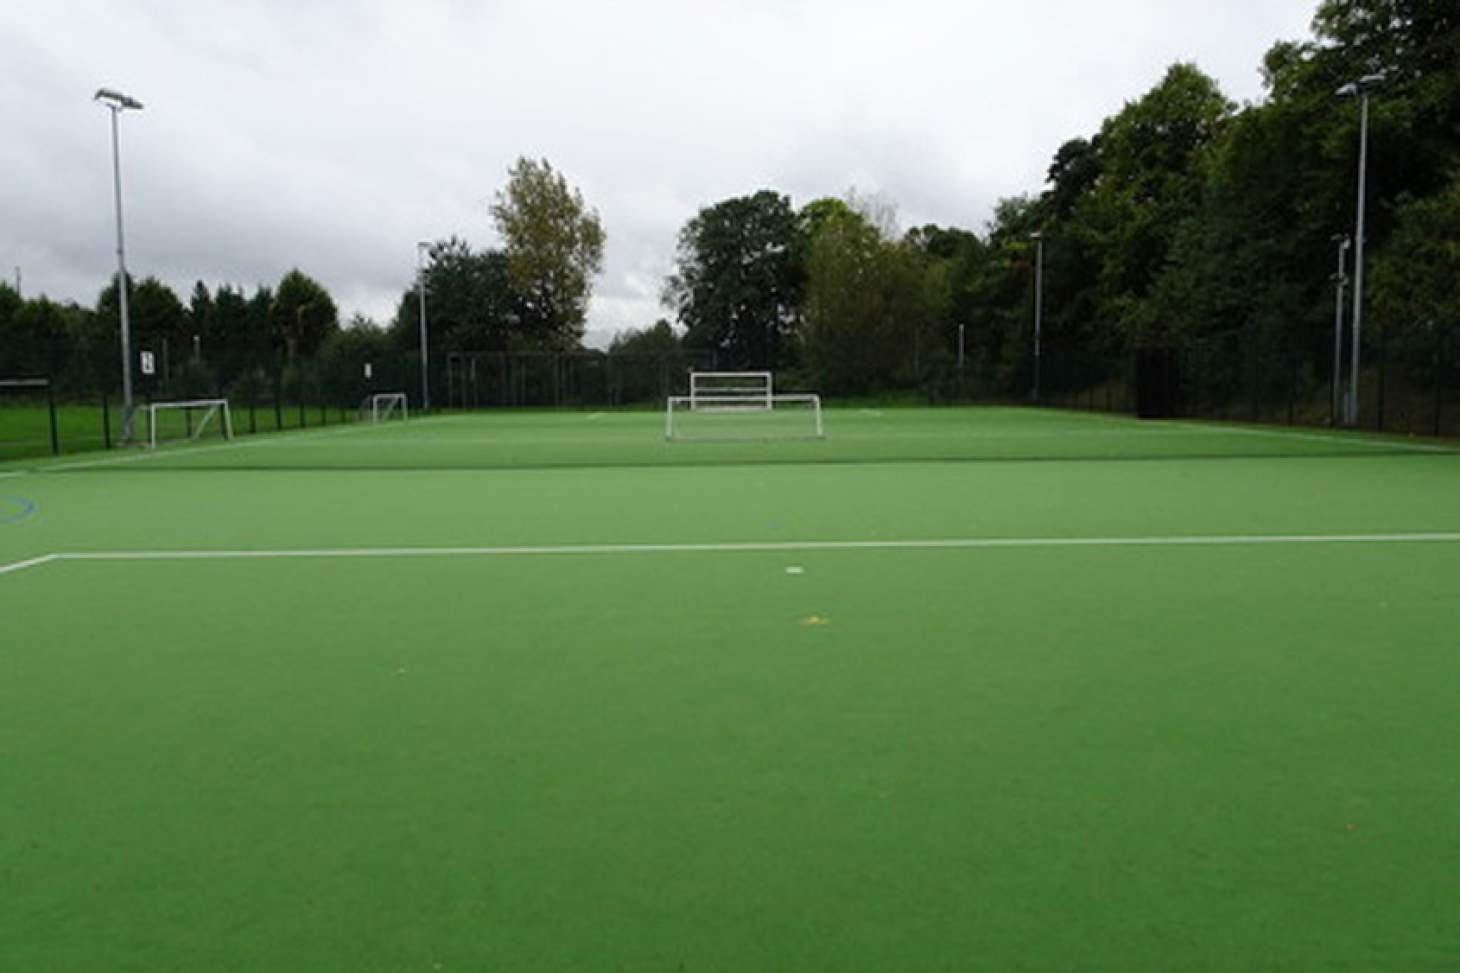 The Barlow RC High School Union | Astroturf rugby pitch